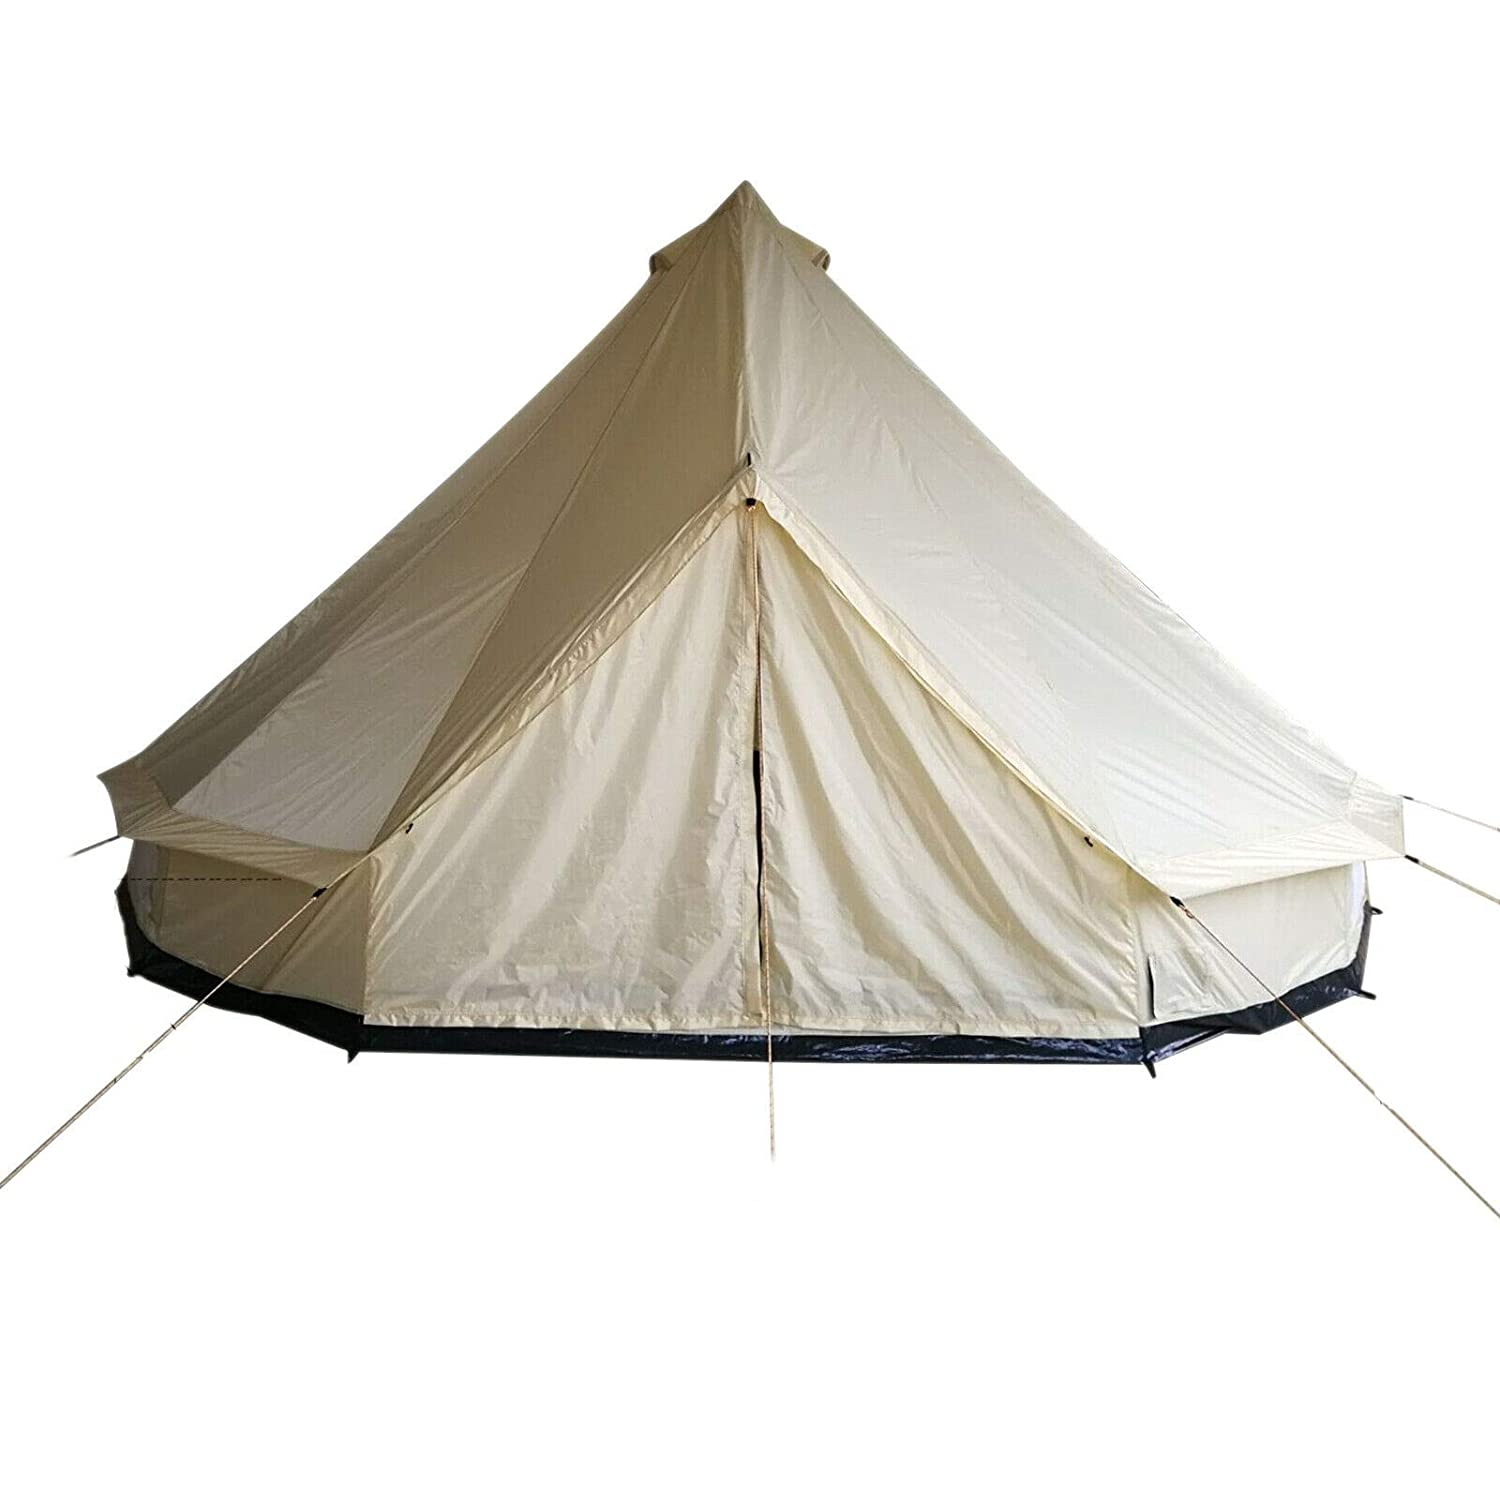 info for fc869 cc086 Amazon.com : FDInspiration Beige 16.4FT 10-Persons Family ...